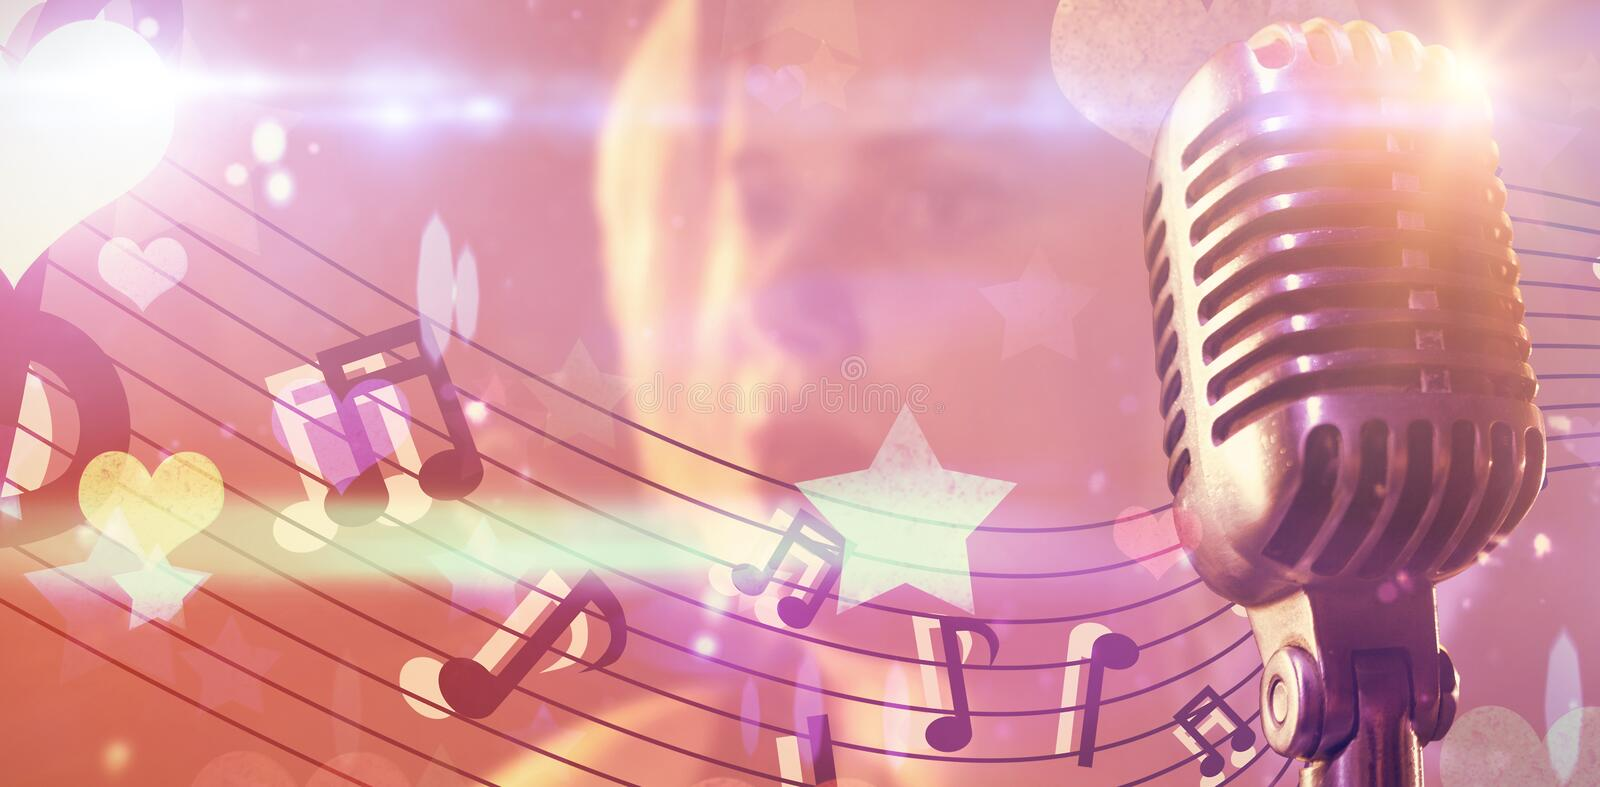 Composite image of close-up of microphone stock illustration